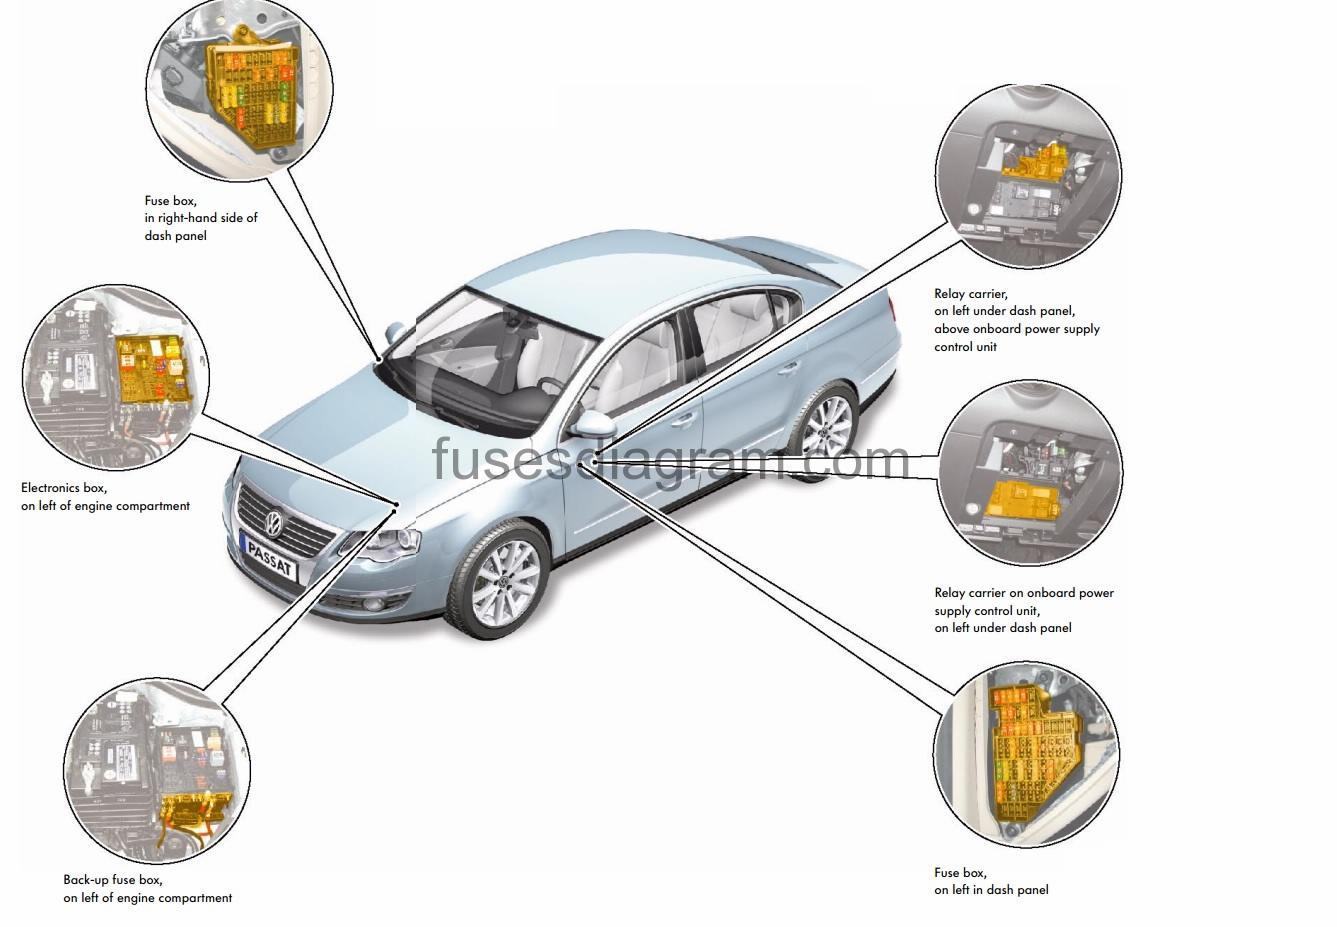 2008 Passat Fuse Box Location Wire Center F150 Volkswagen B6 Rh Fusesdiagram Com Diagram